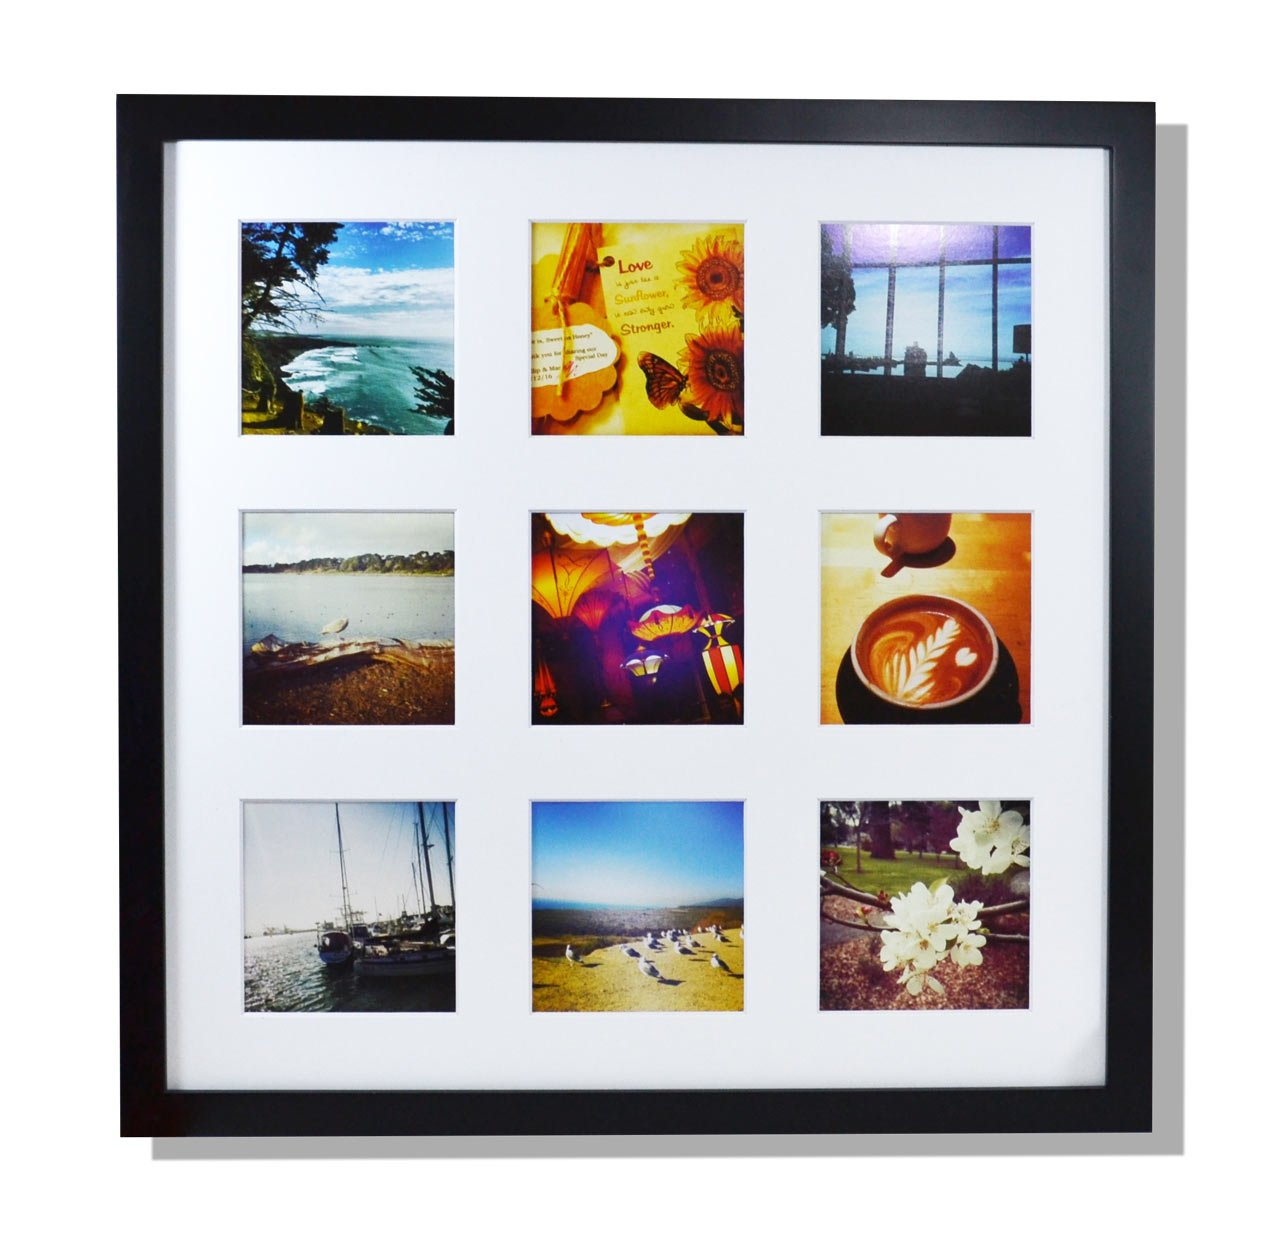 Golden State Art, Smartphone Instagram Frame Collection, 16x16-inch Square Photo Wood Frames for 9 4x4-inch Pictures with Real Glass, Black by Golden State Art